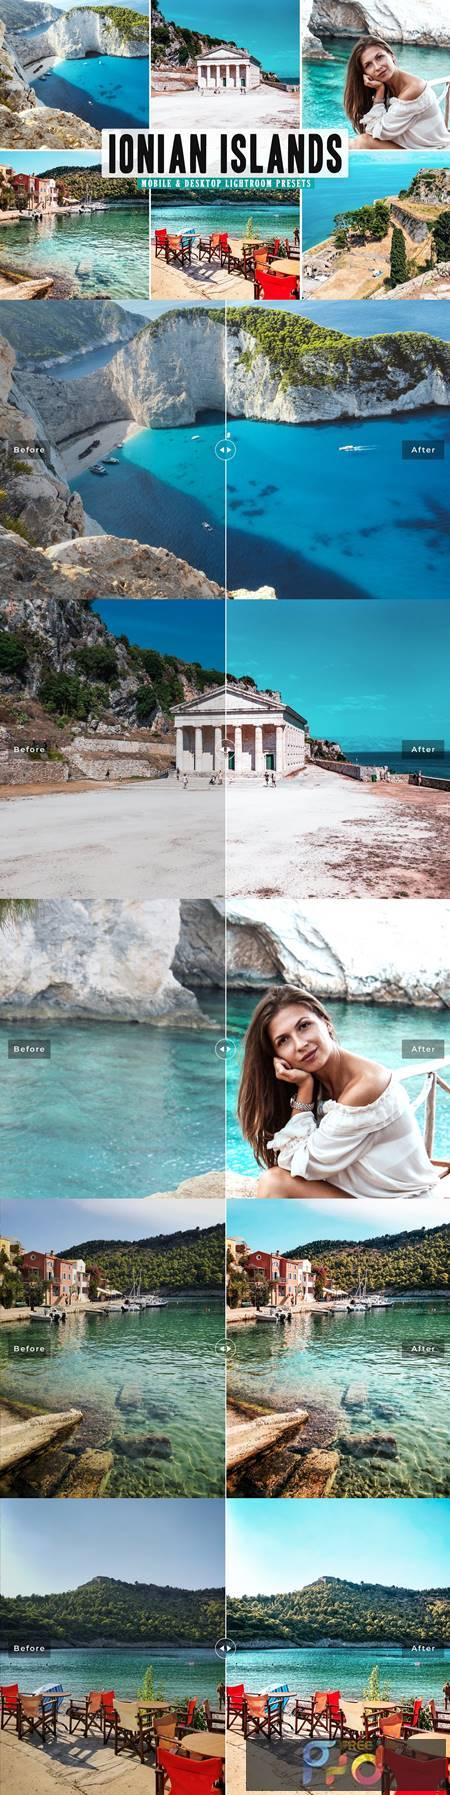 Ionian Islands Mobile & Desktop Lightroom Presets 5478158 1